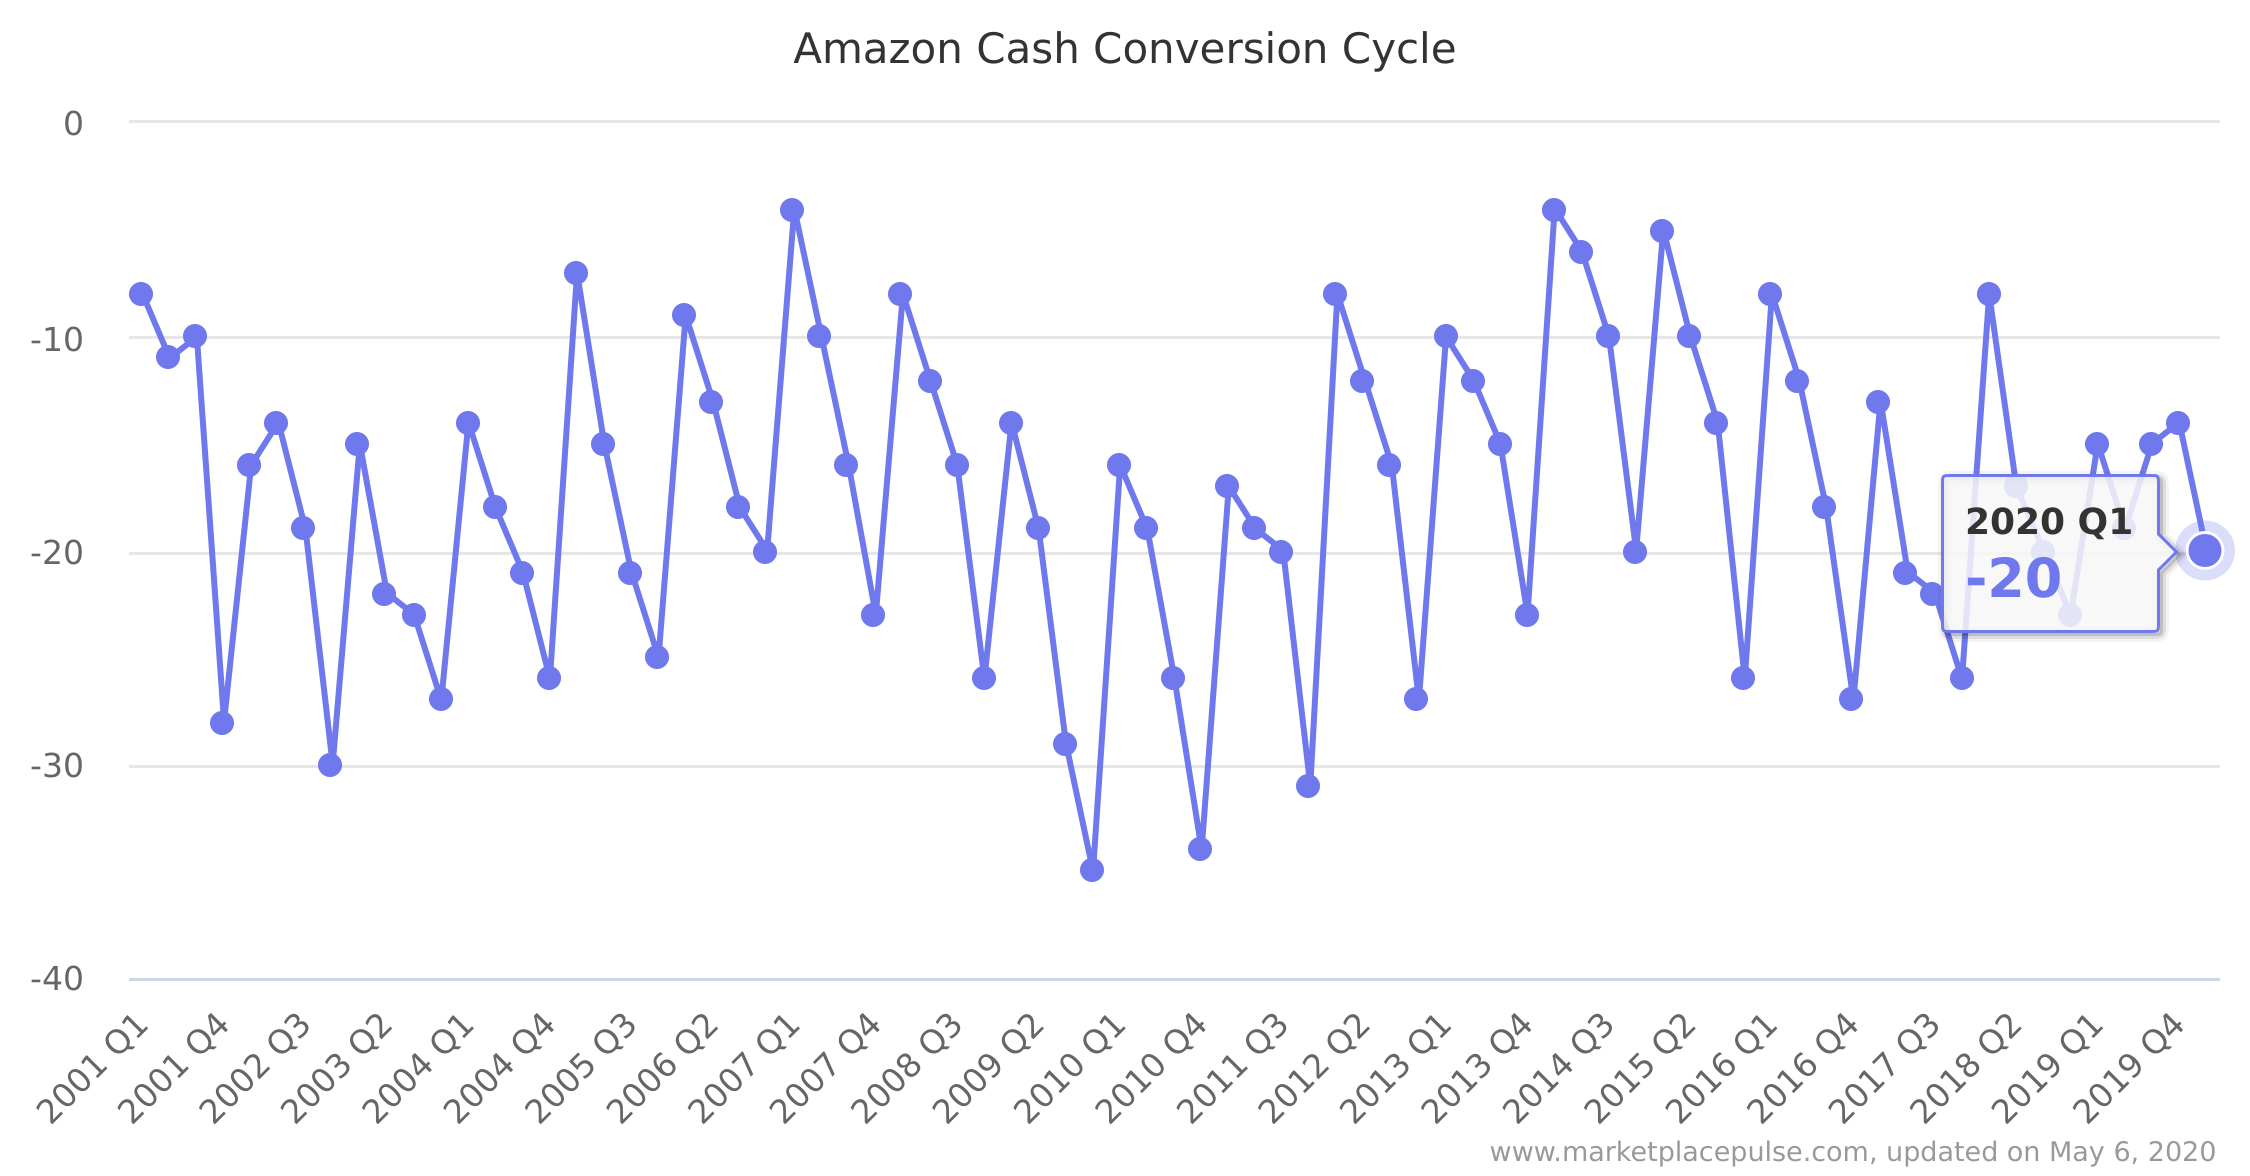 Cash conversion cycle for Amazon every quarter since Q1 2000 (source). Notice how none of the quarters have a positive CCC.